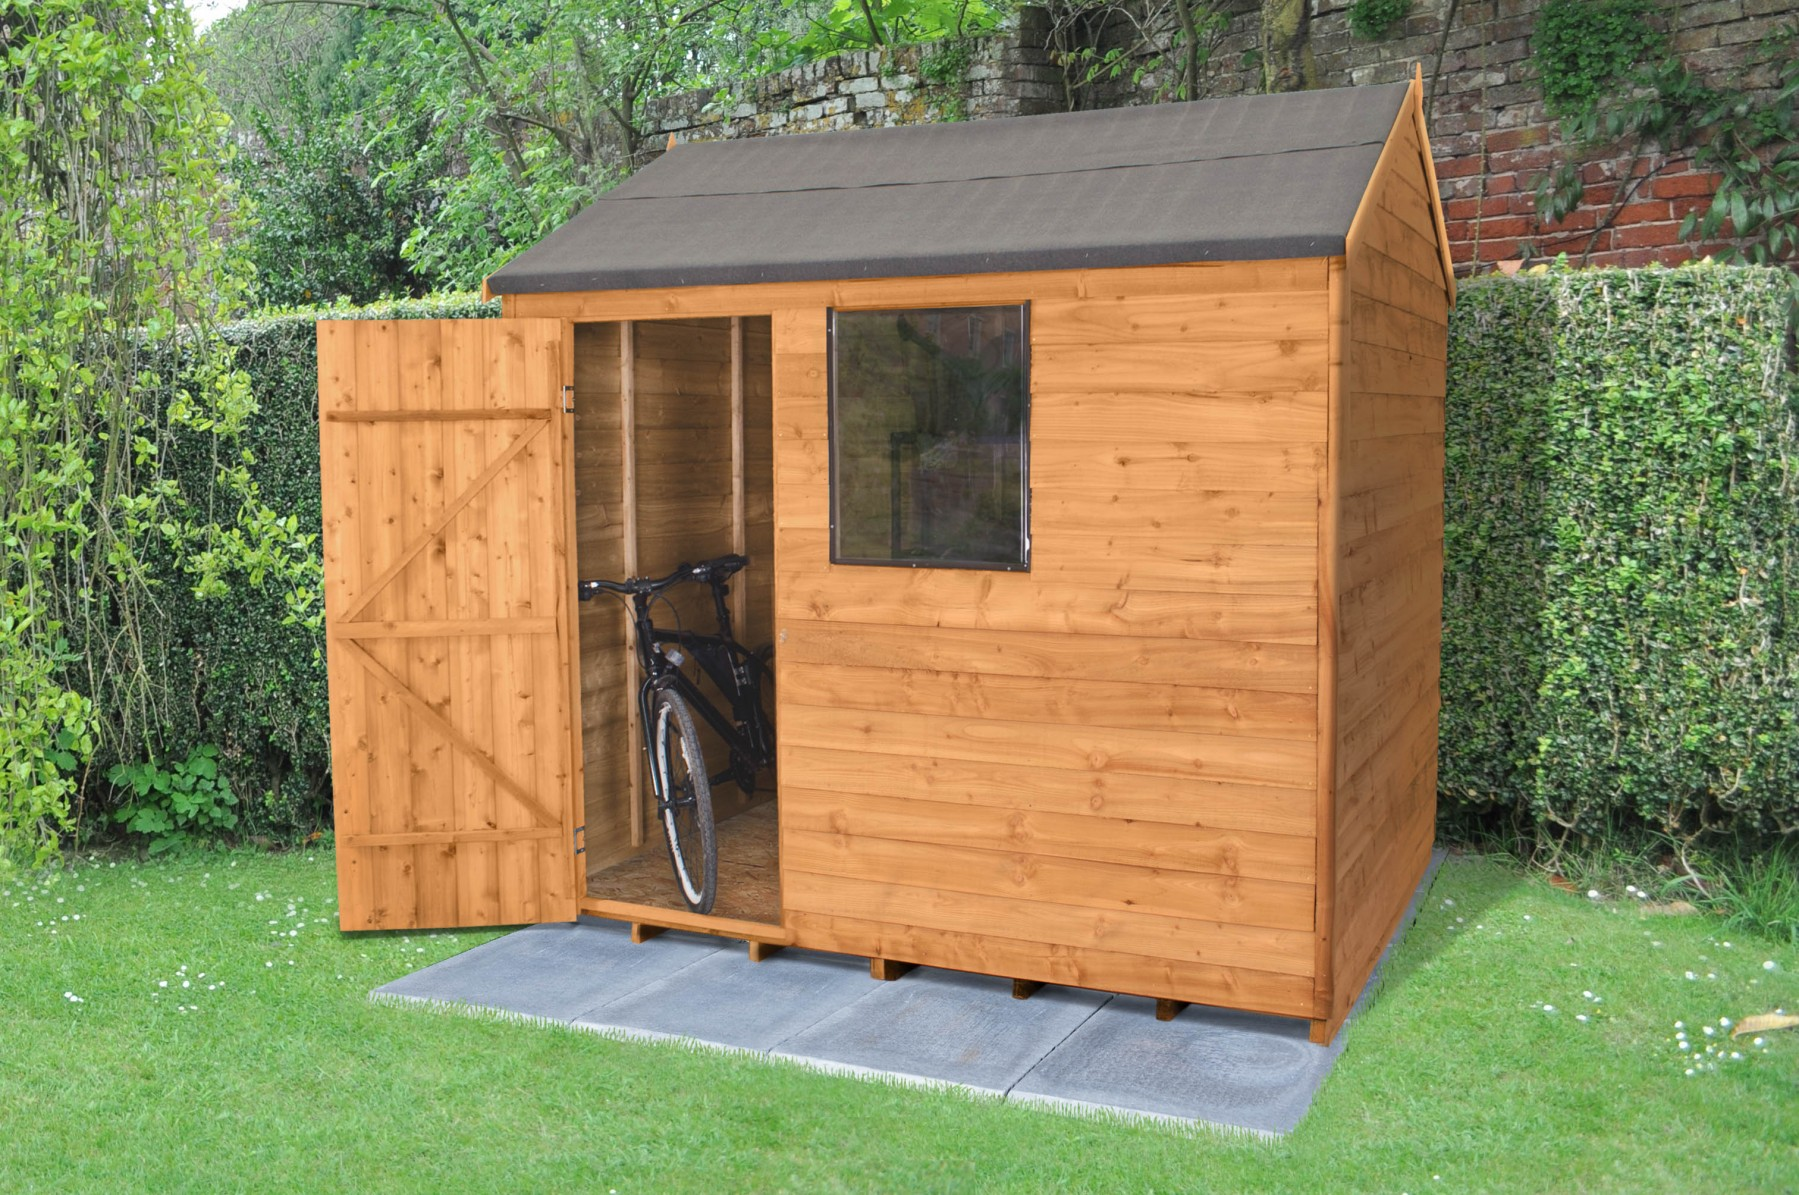 8x6 Deck This Is L Shaped Garden Shed Plans